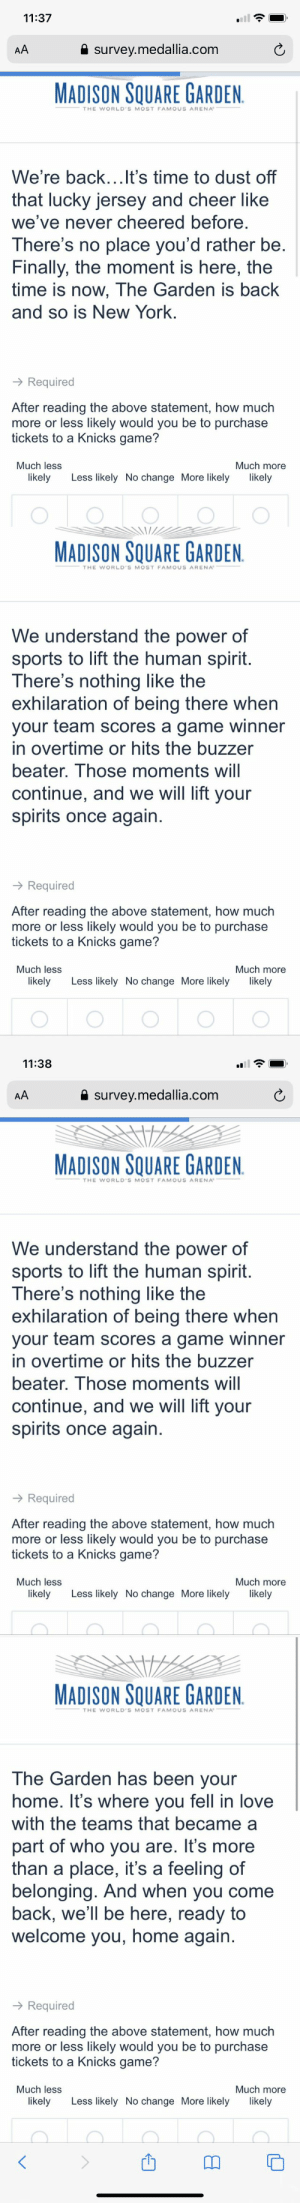 Knicks PR has given up and is now sending fans surveys to tell them what they should say 😂 https://t.co/Dr04oKUZSM: Knicks PR has given up and is now sending fans surveys to tell them what they should say 😂 https://t.co/Dr04oKUZSM